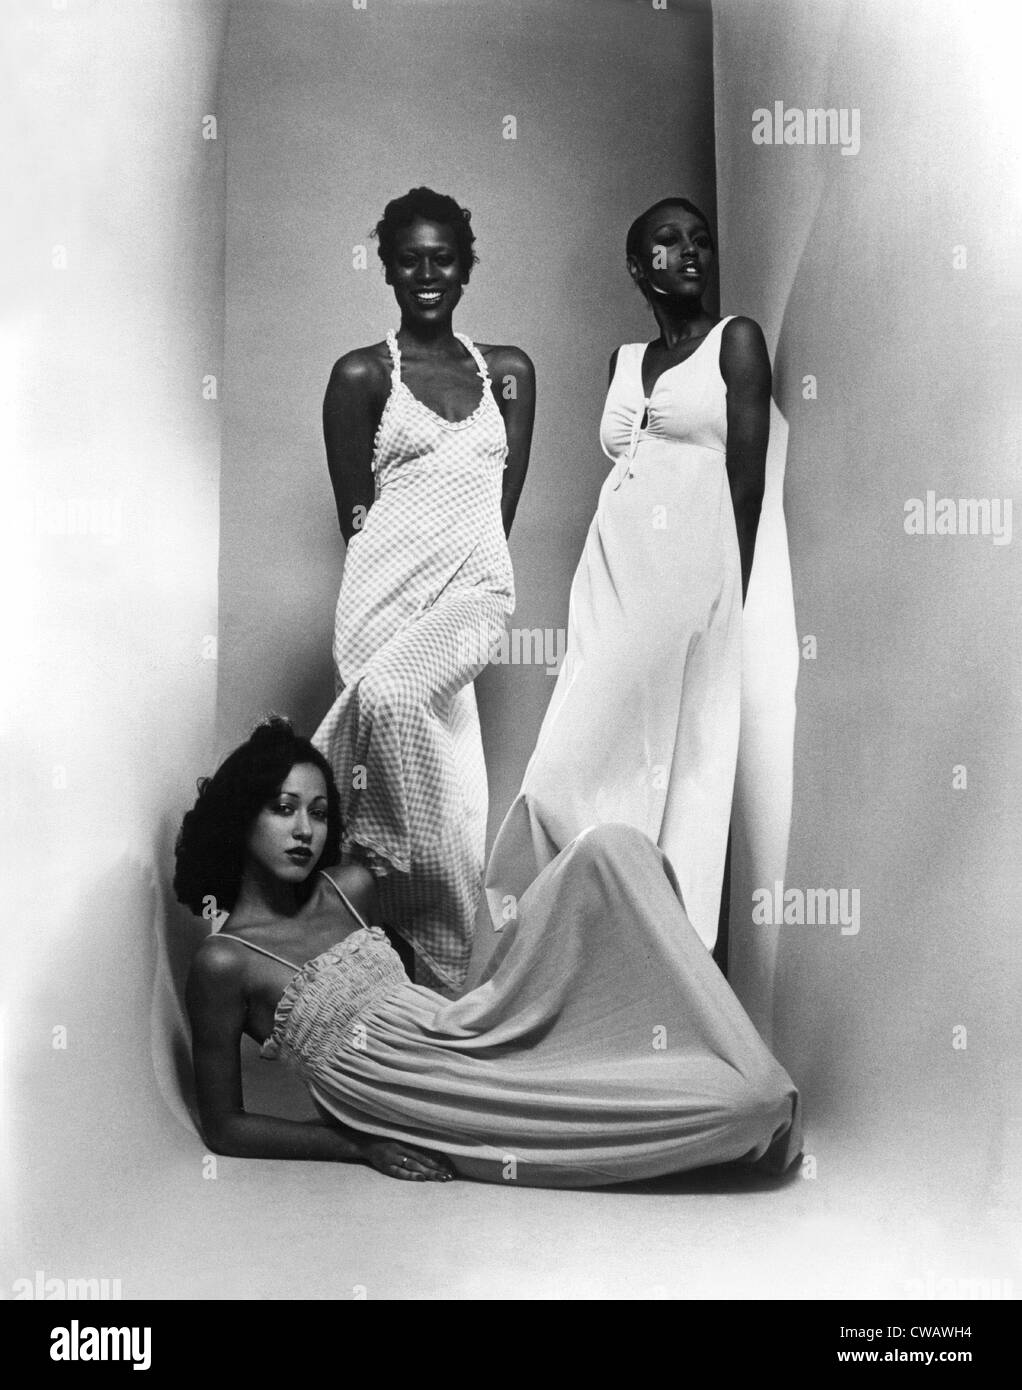 Three models sport maxi-dresses with empire waistlines, 1973.. Courtesy: CSU Archives / Everett Collection - Stock Image